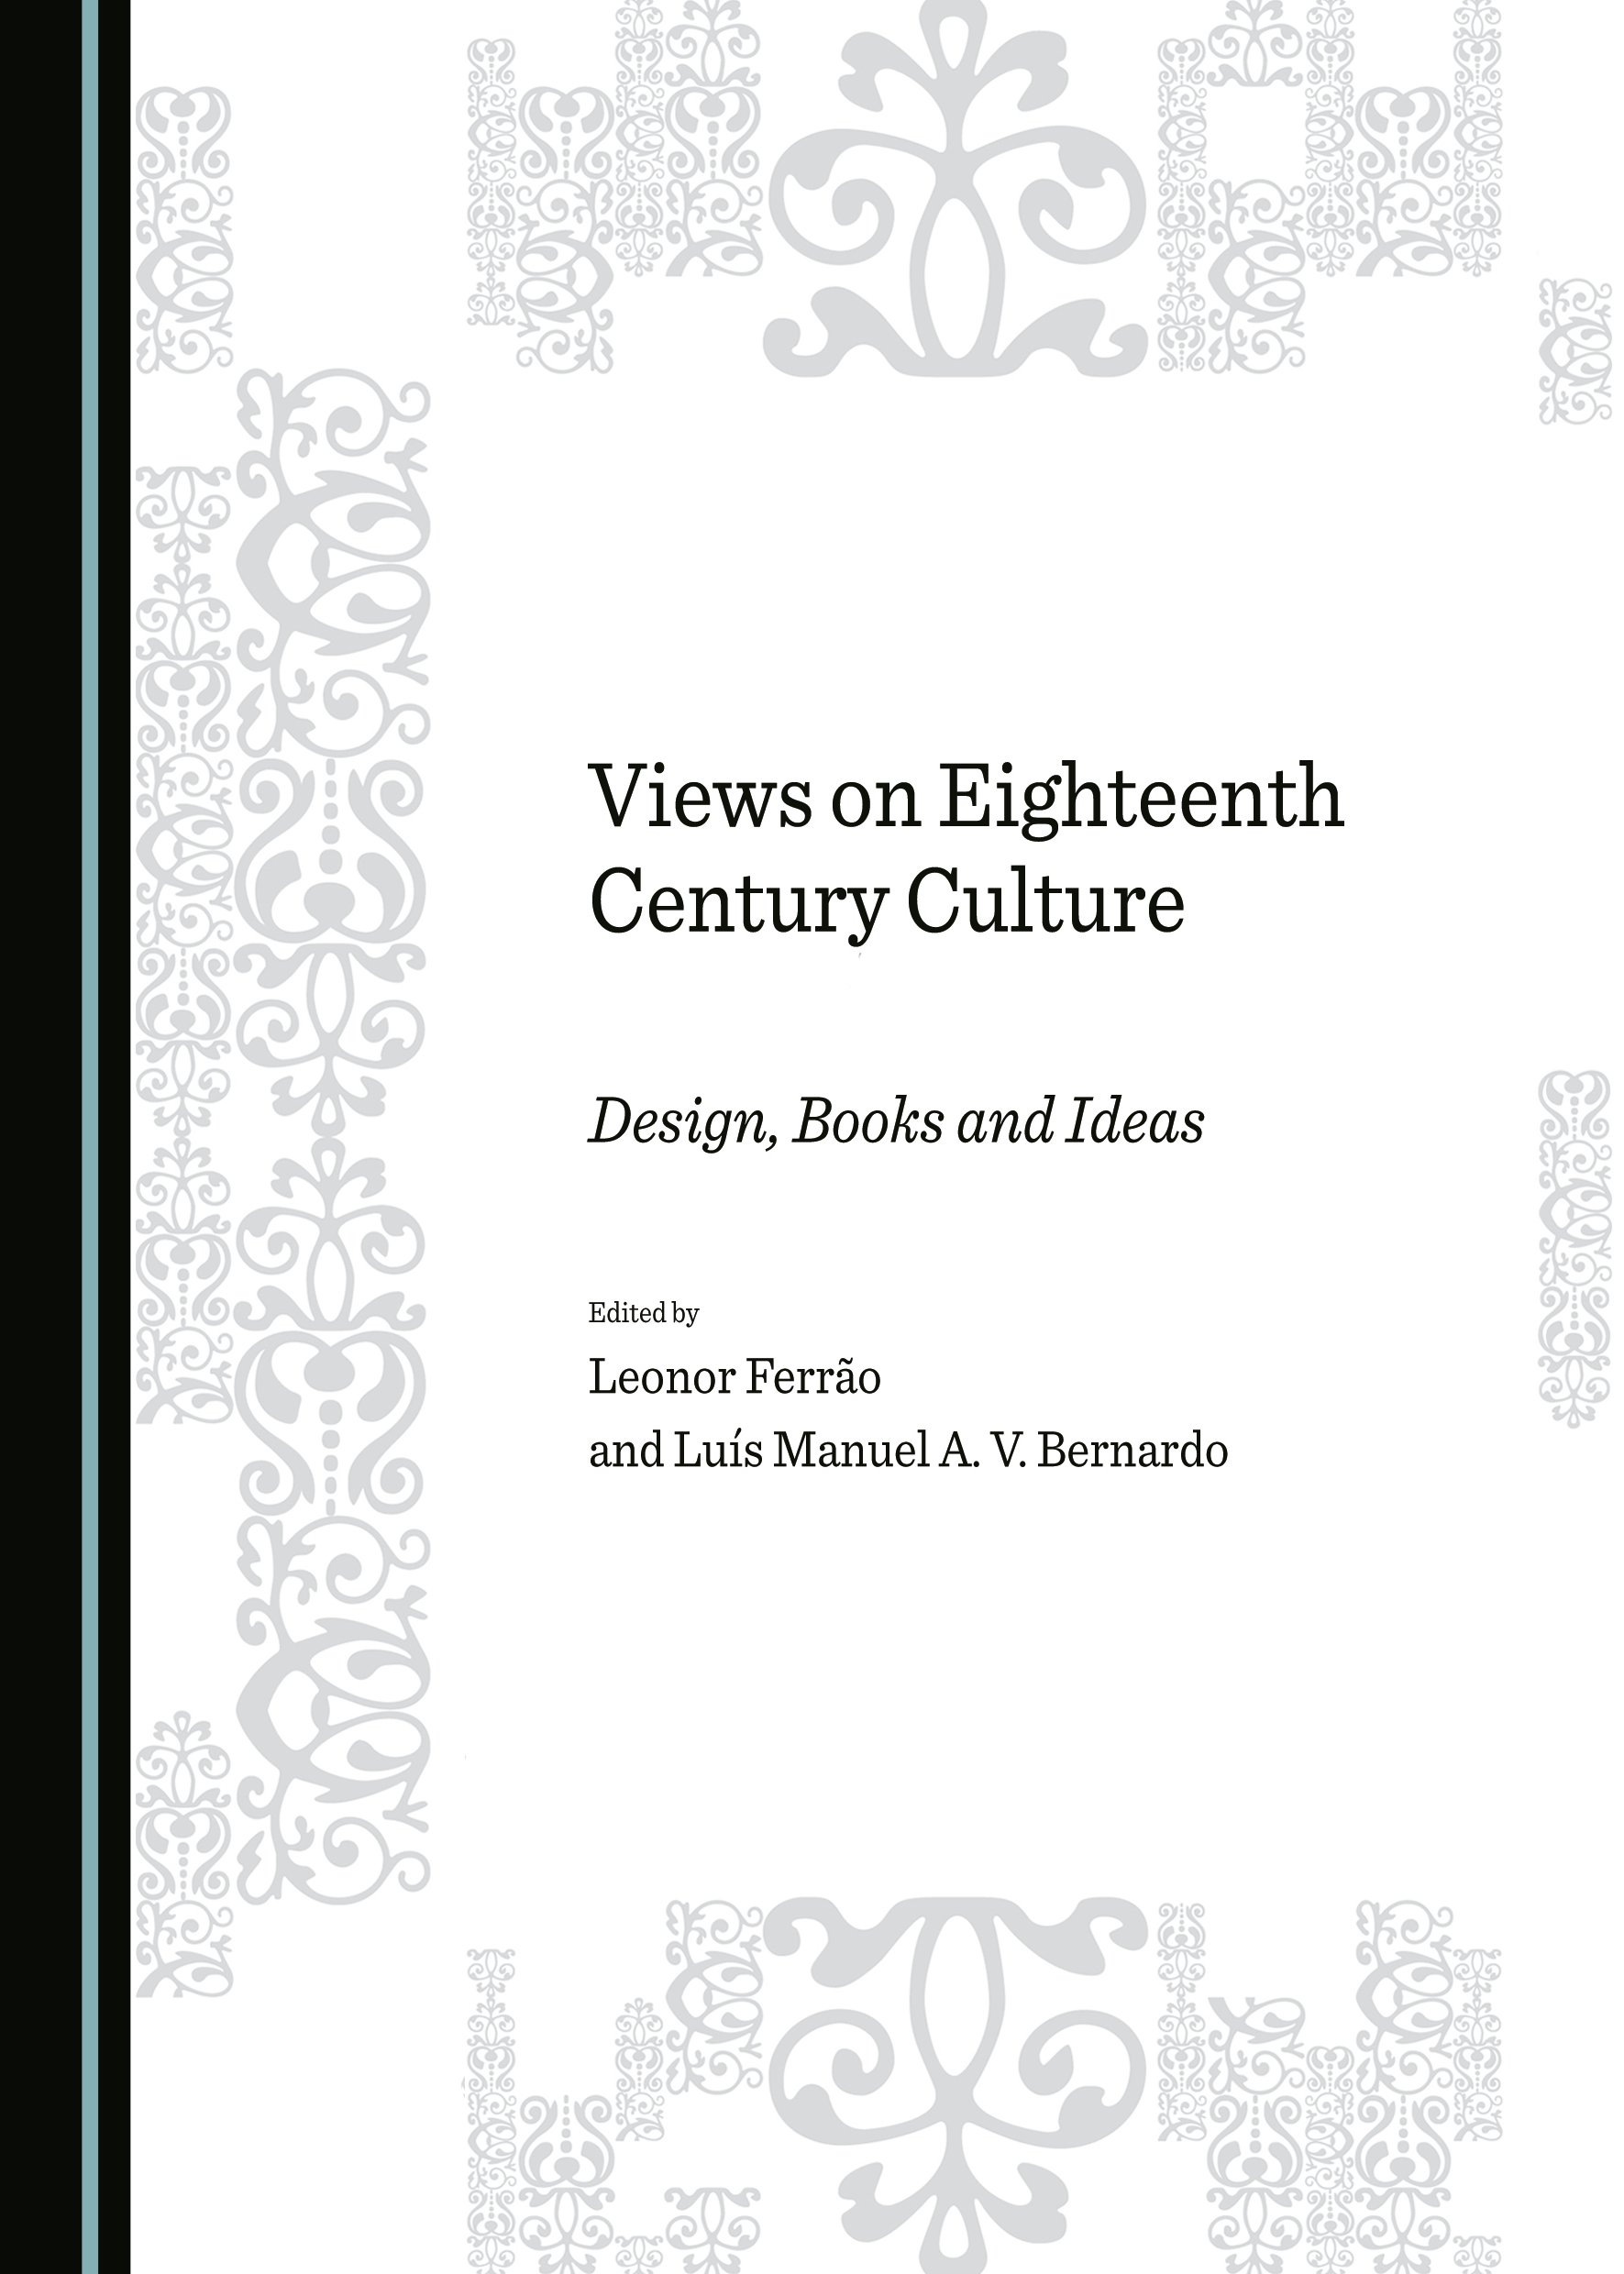 Views on Eighteenth Century Culture: Design, Books and Ideas